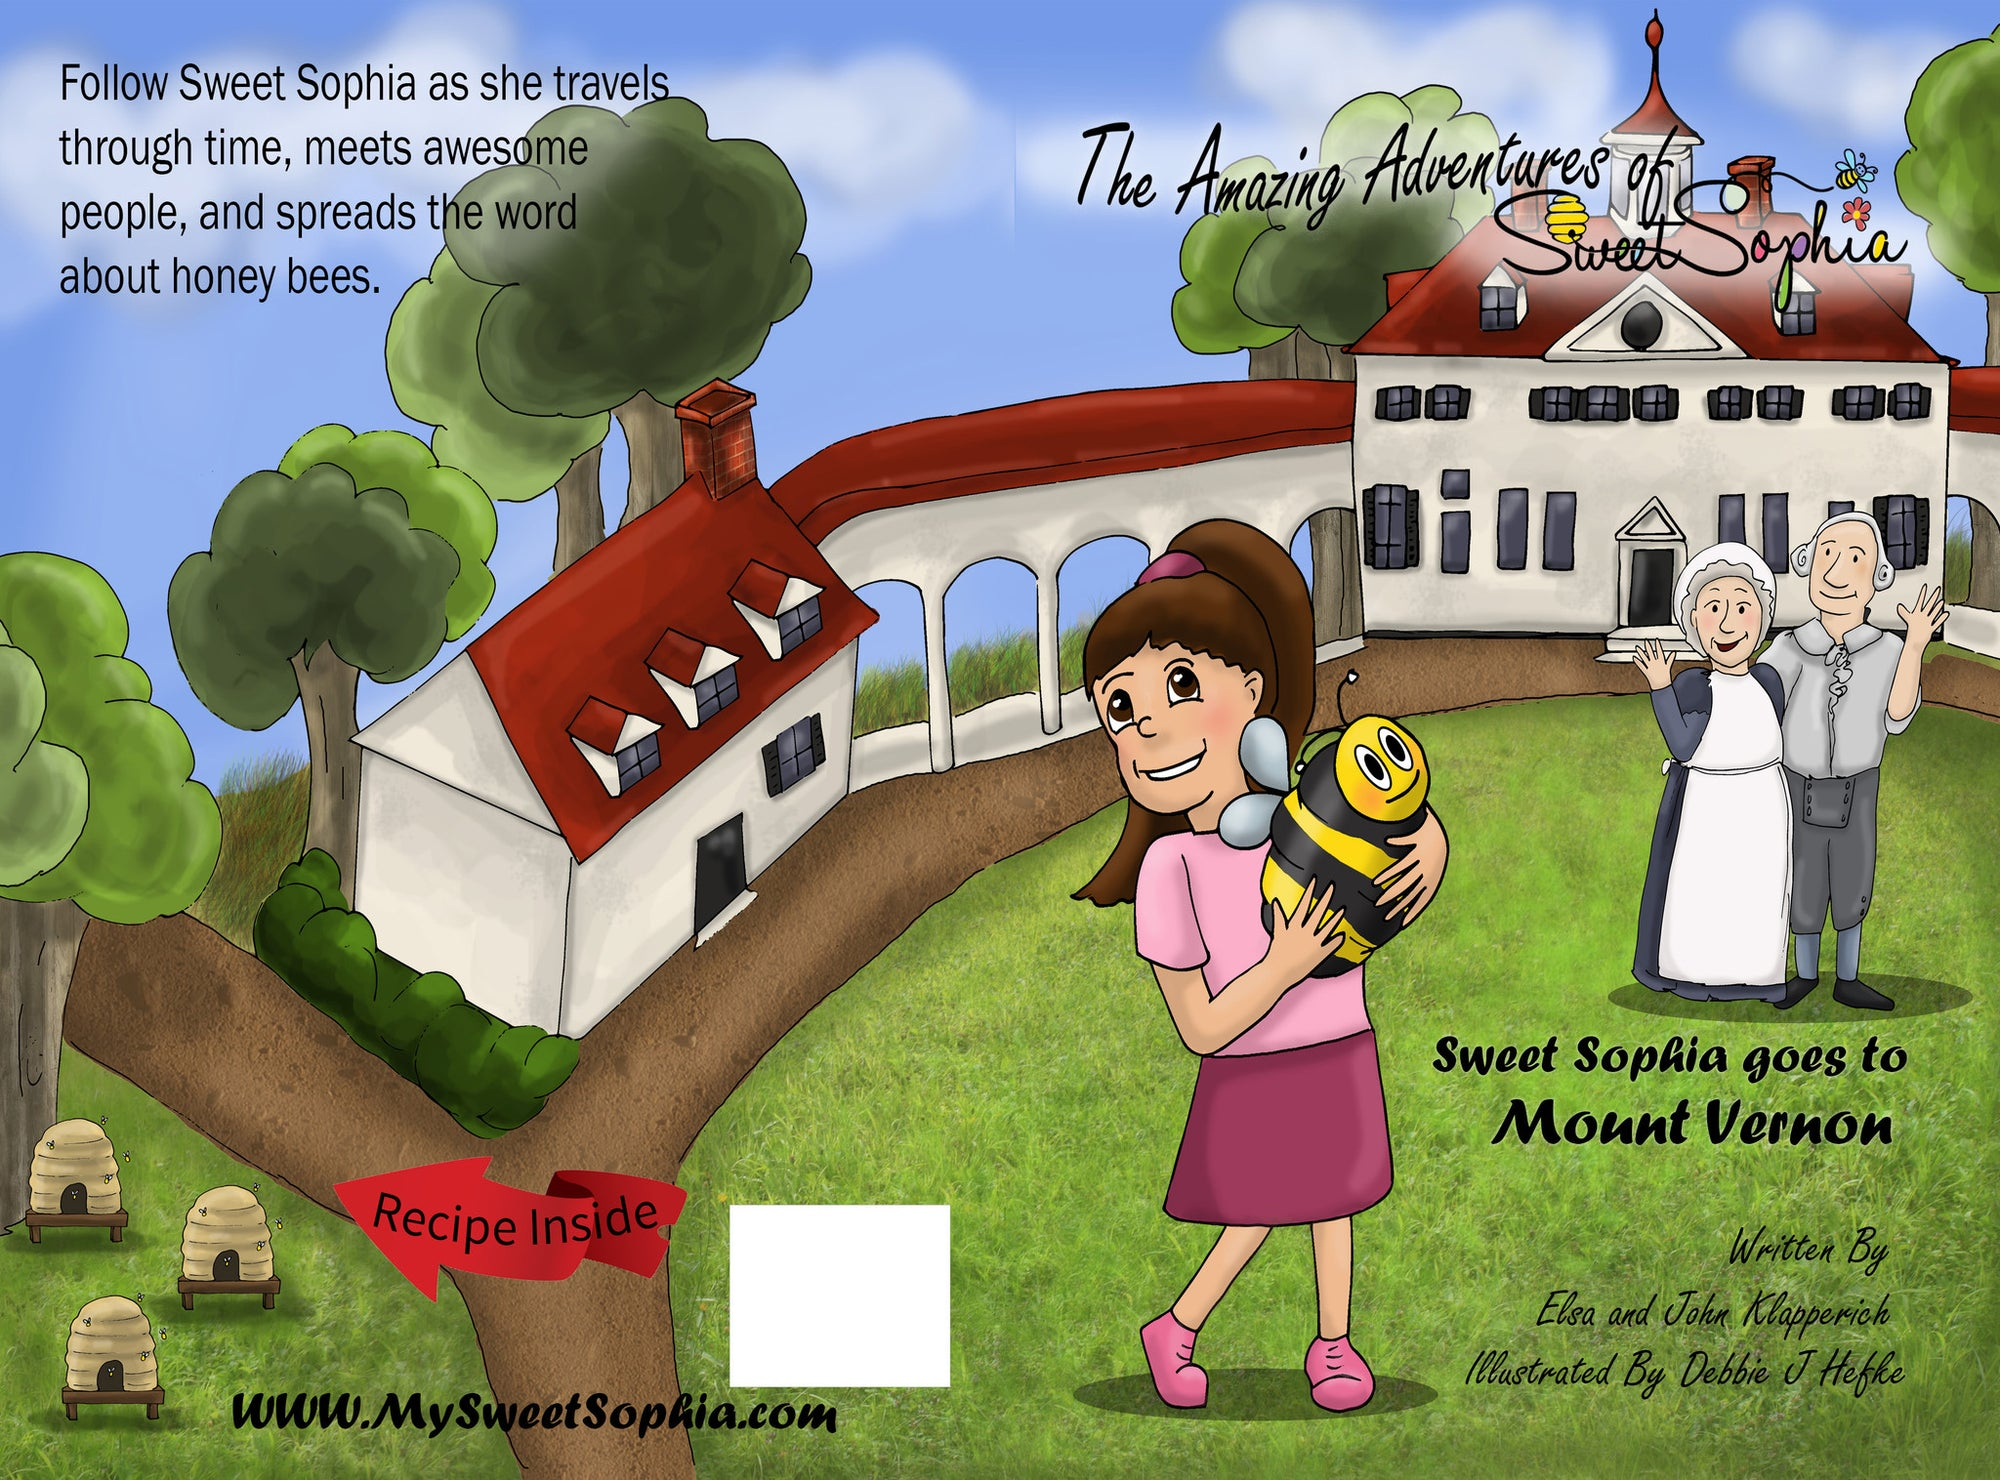 The Amazing Adventures of Sweet Sophia - Sophia goes to Mt. Vernon